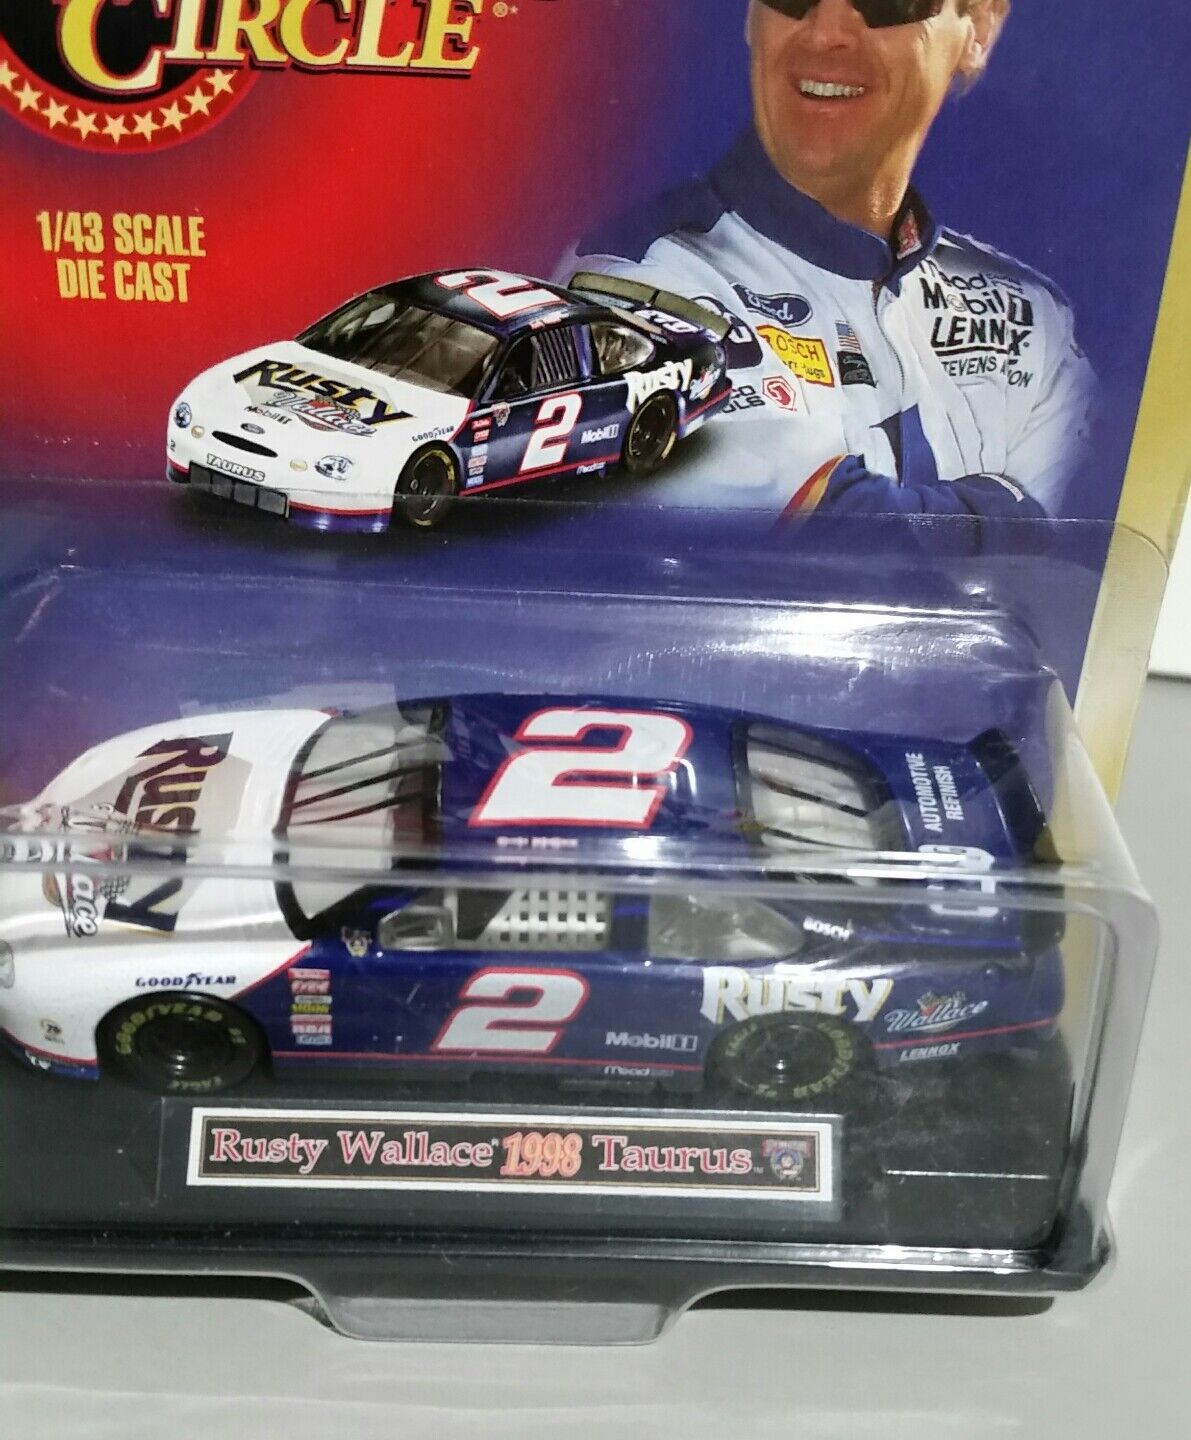 New RUSTY WALLACE 1998 Ford Ford Ford Taurus 1 43 WINNERS CIRCLE no miller ads on car fed077